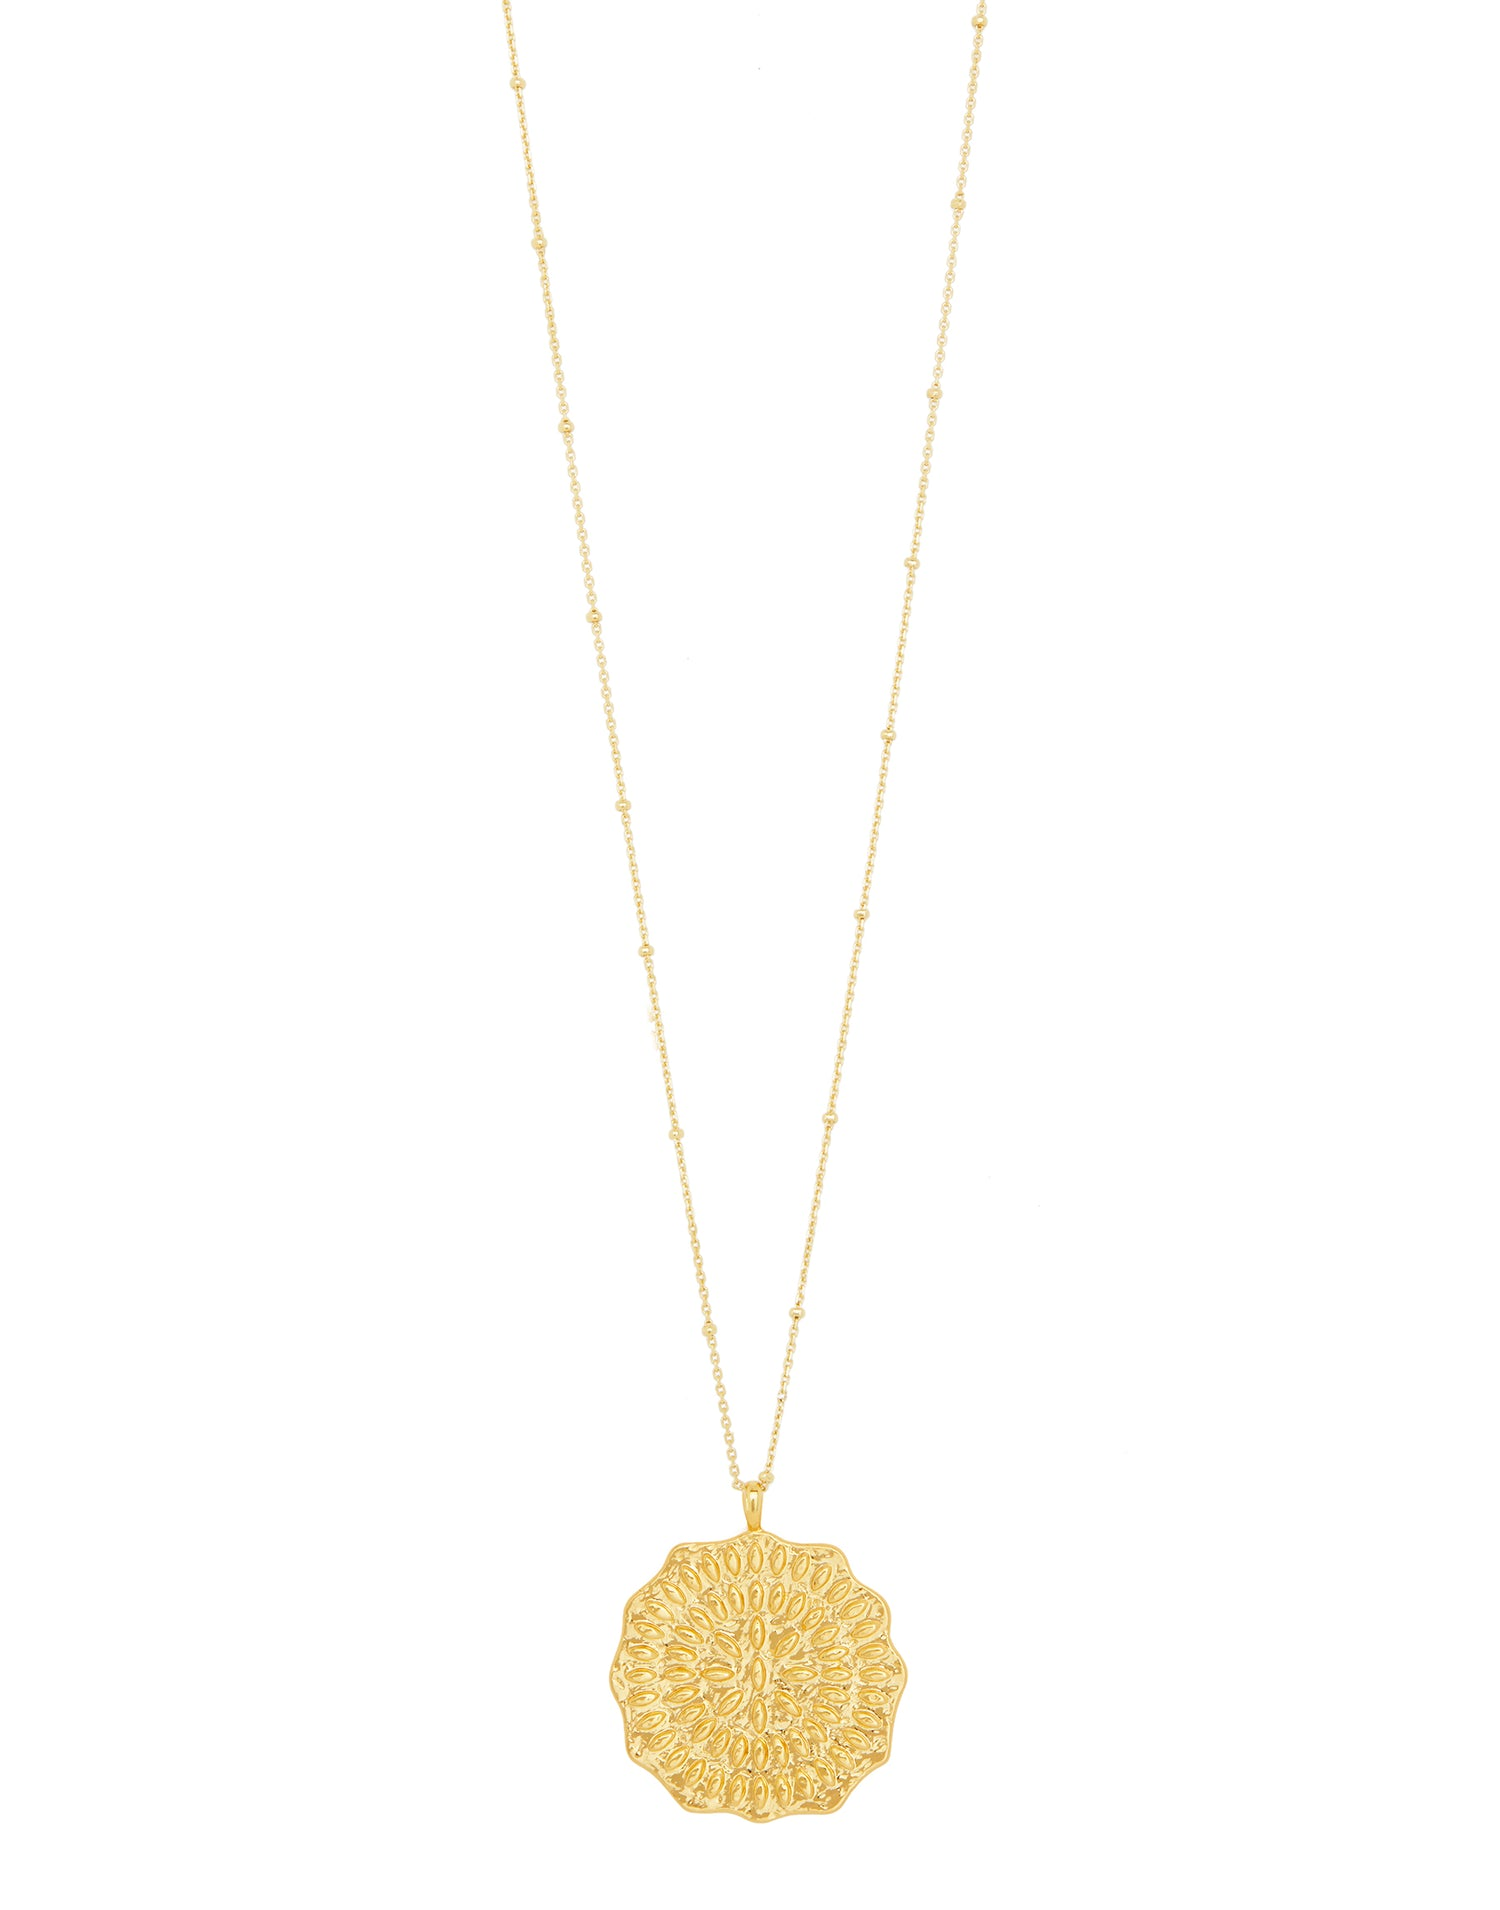 Mosaic Coin Necklace in Gold - product view